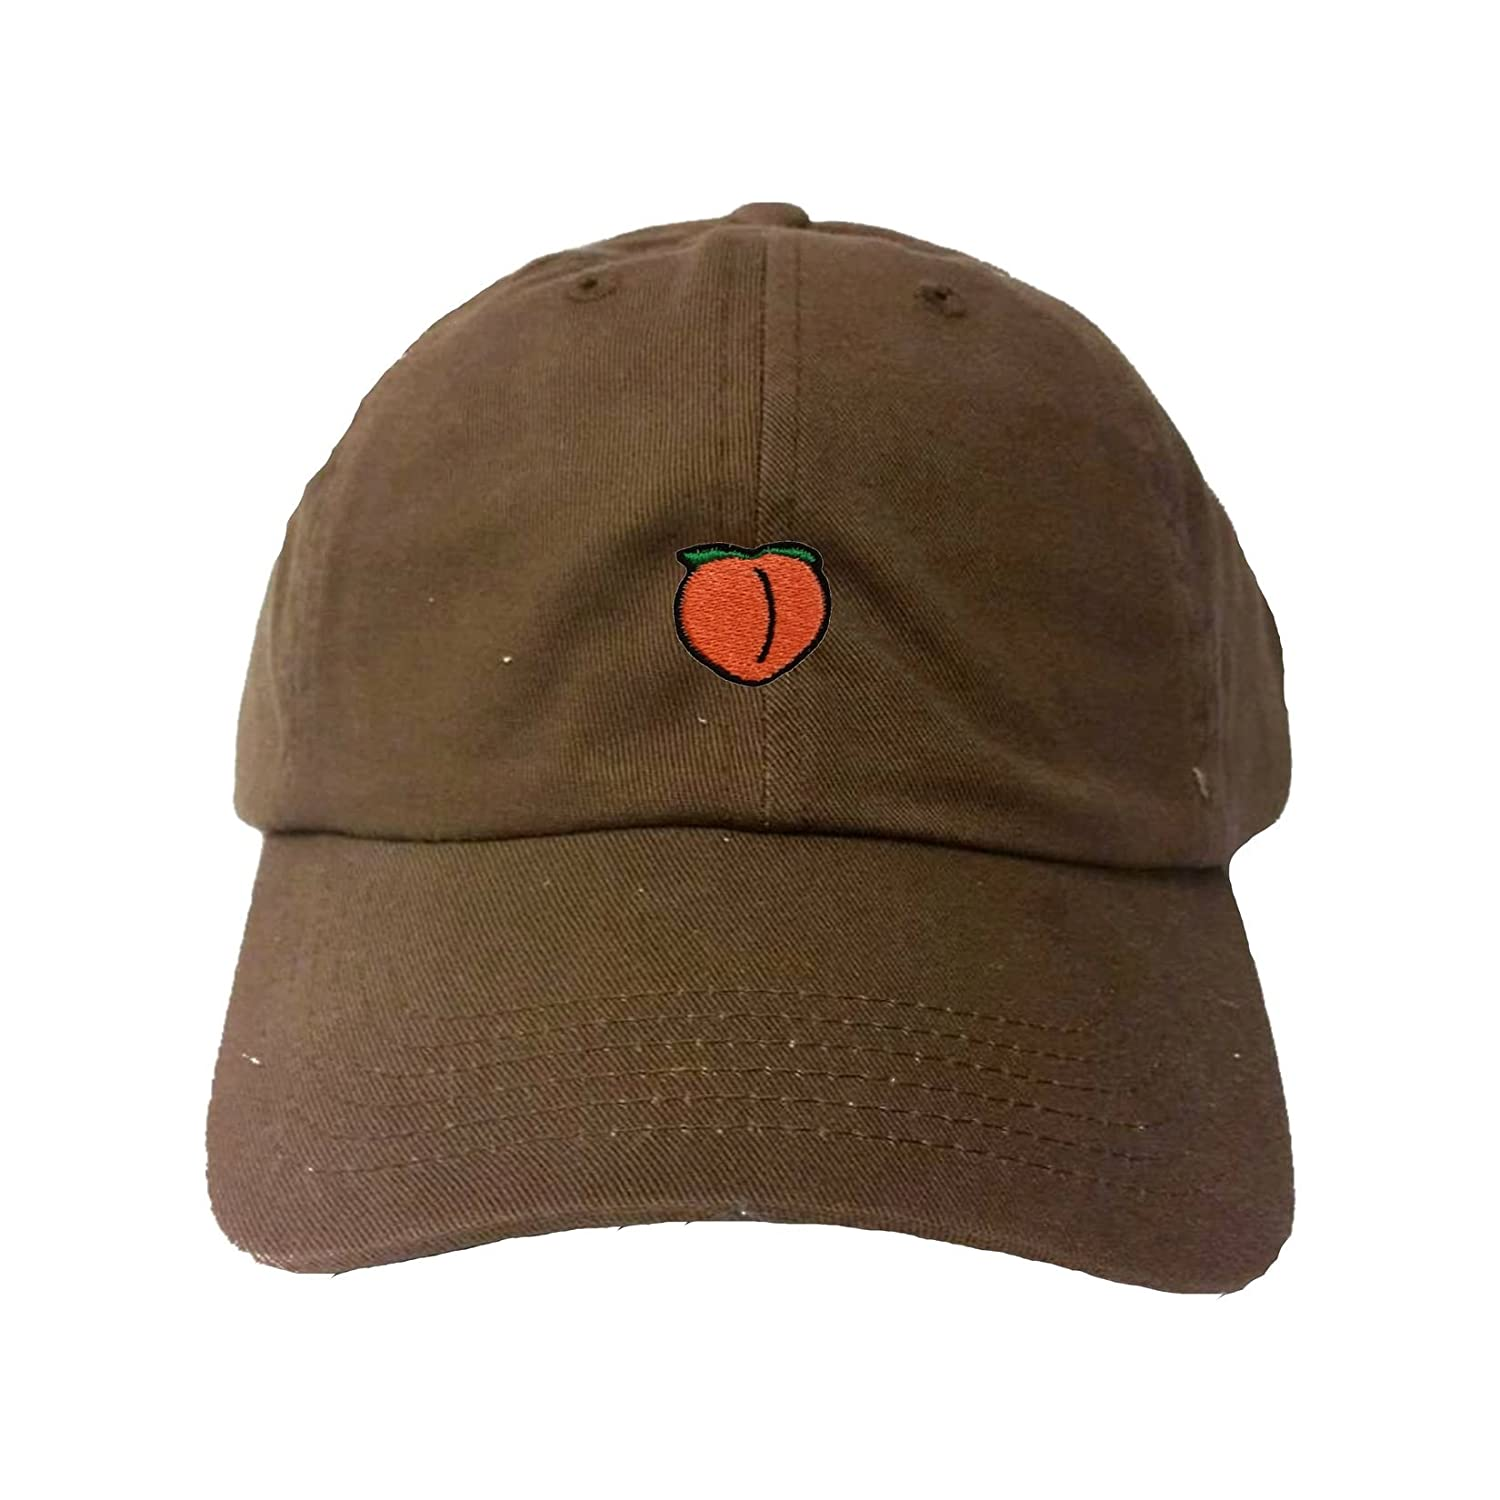 840bc69ecb93cf Amazon.com: Adjustable Black Adult Peach Emoji Embroidered Dad Hat: Clothing